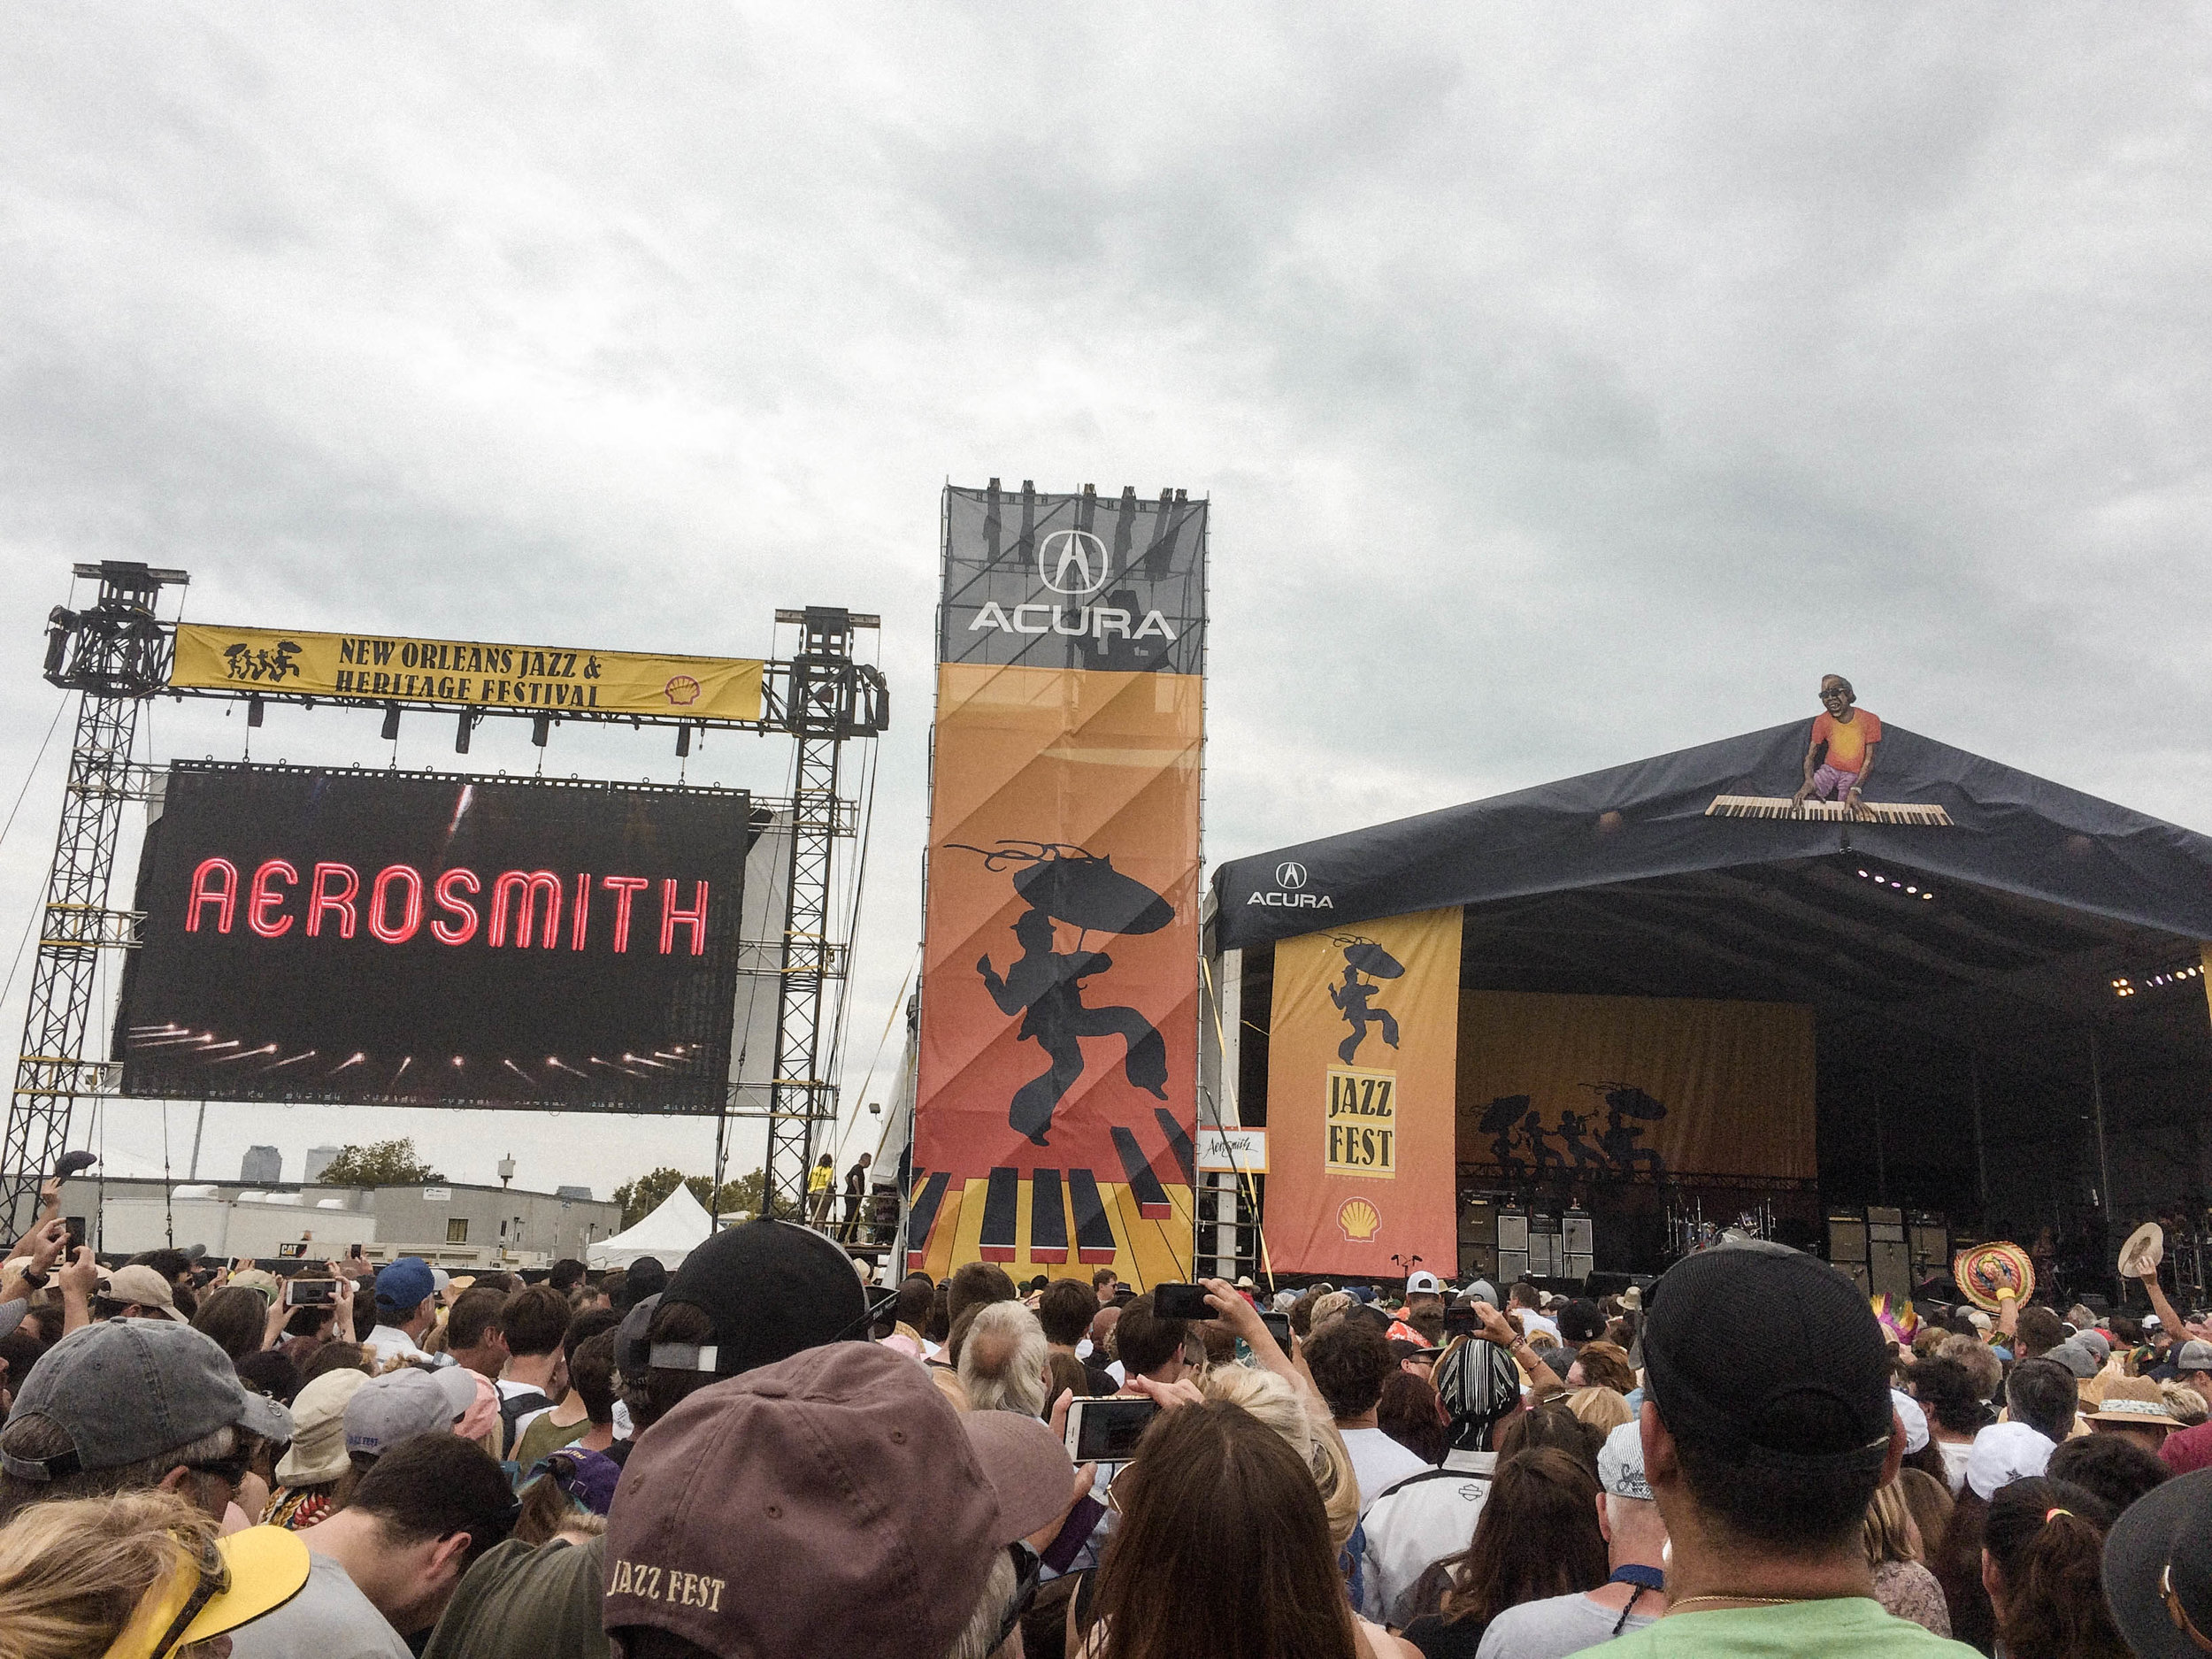 If you've ever held the belief that travel is expensive or solo travel is dangerous and scary - but have secretly wanted to do both - this post is for you!  My solo trip to New Orleans was the Abundant Result of flipping the script on those limiting beliefs! [Aerosmith at Jazz Fest in New Orleans]